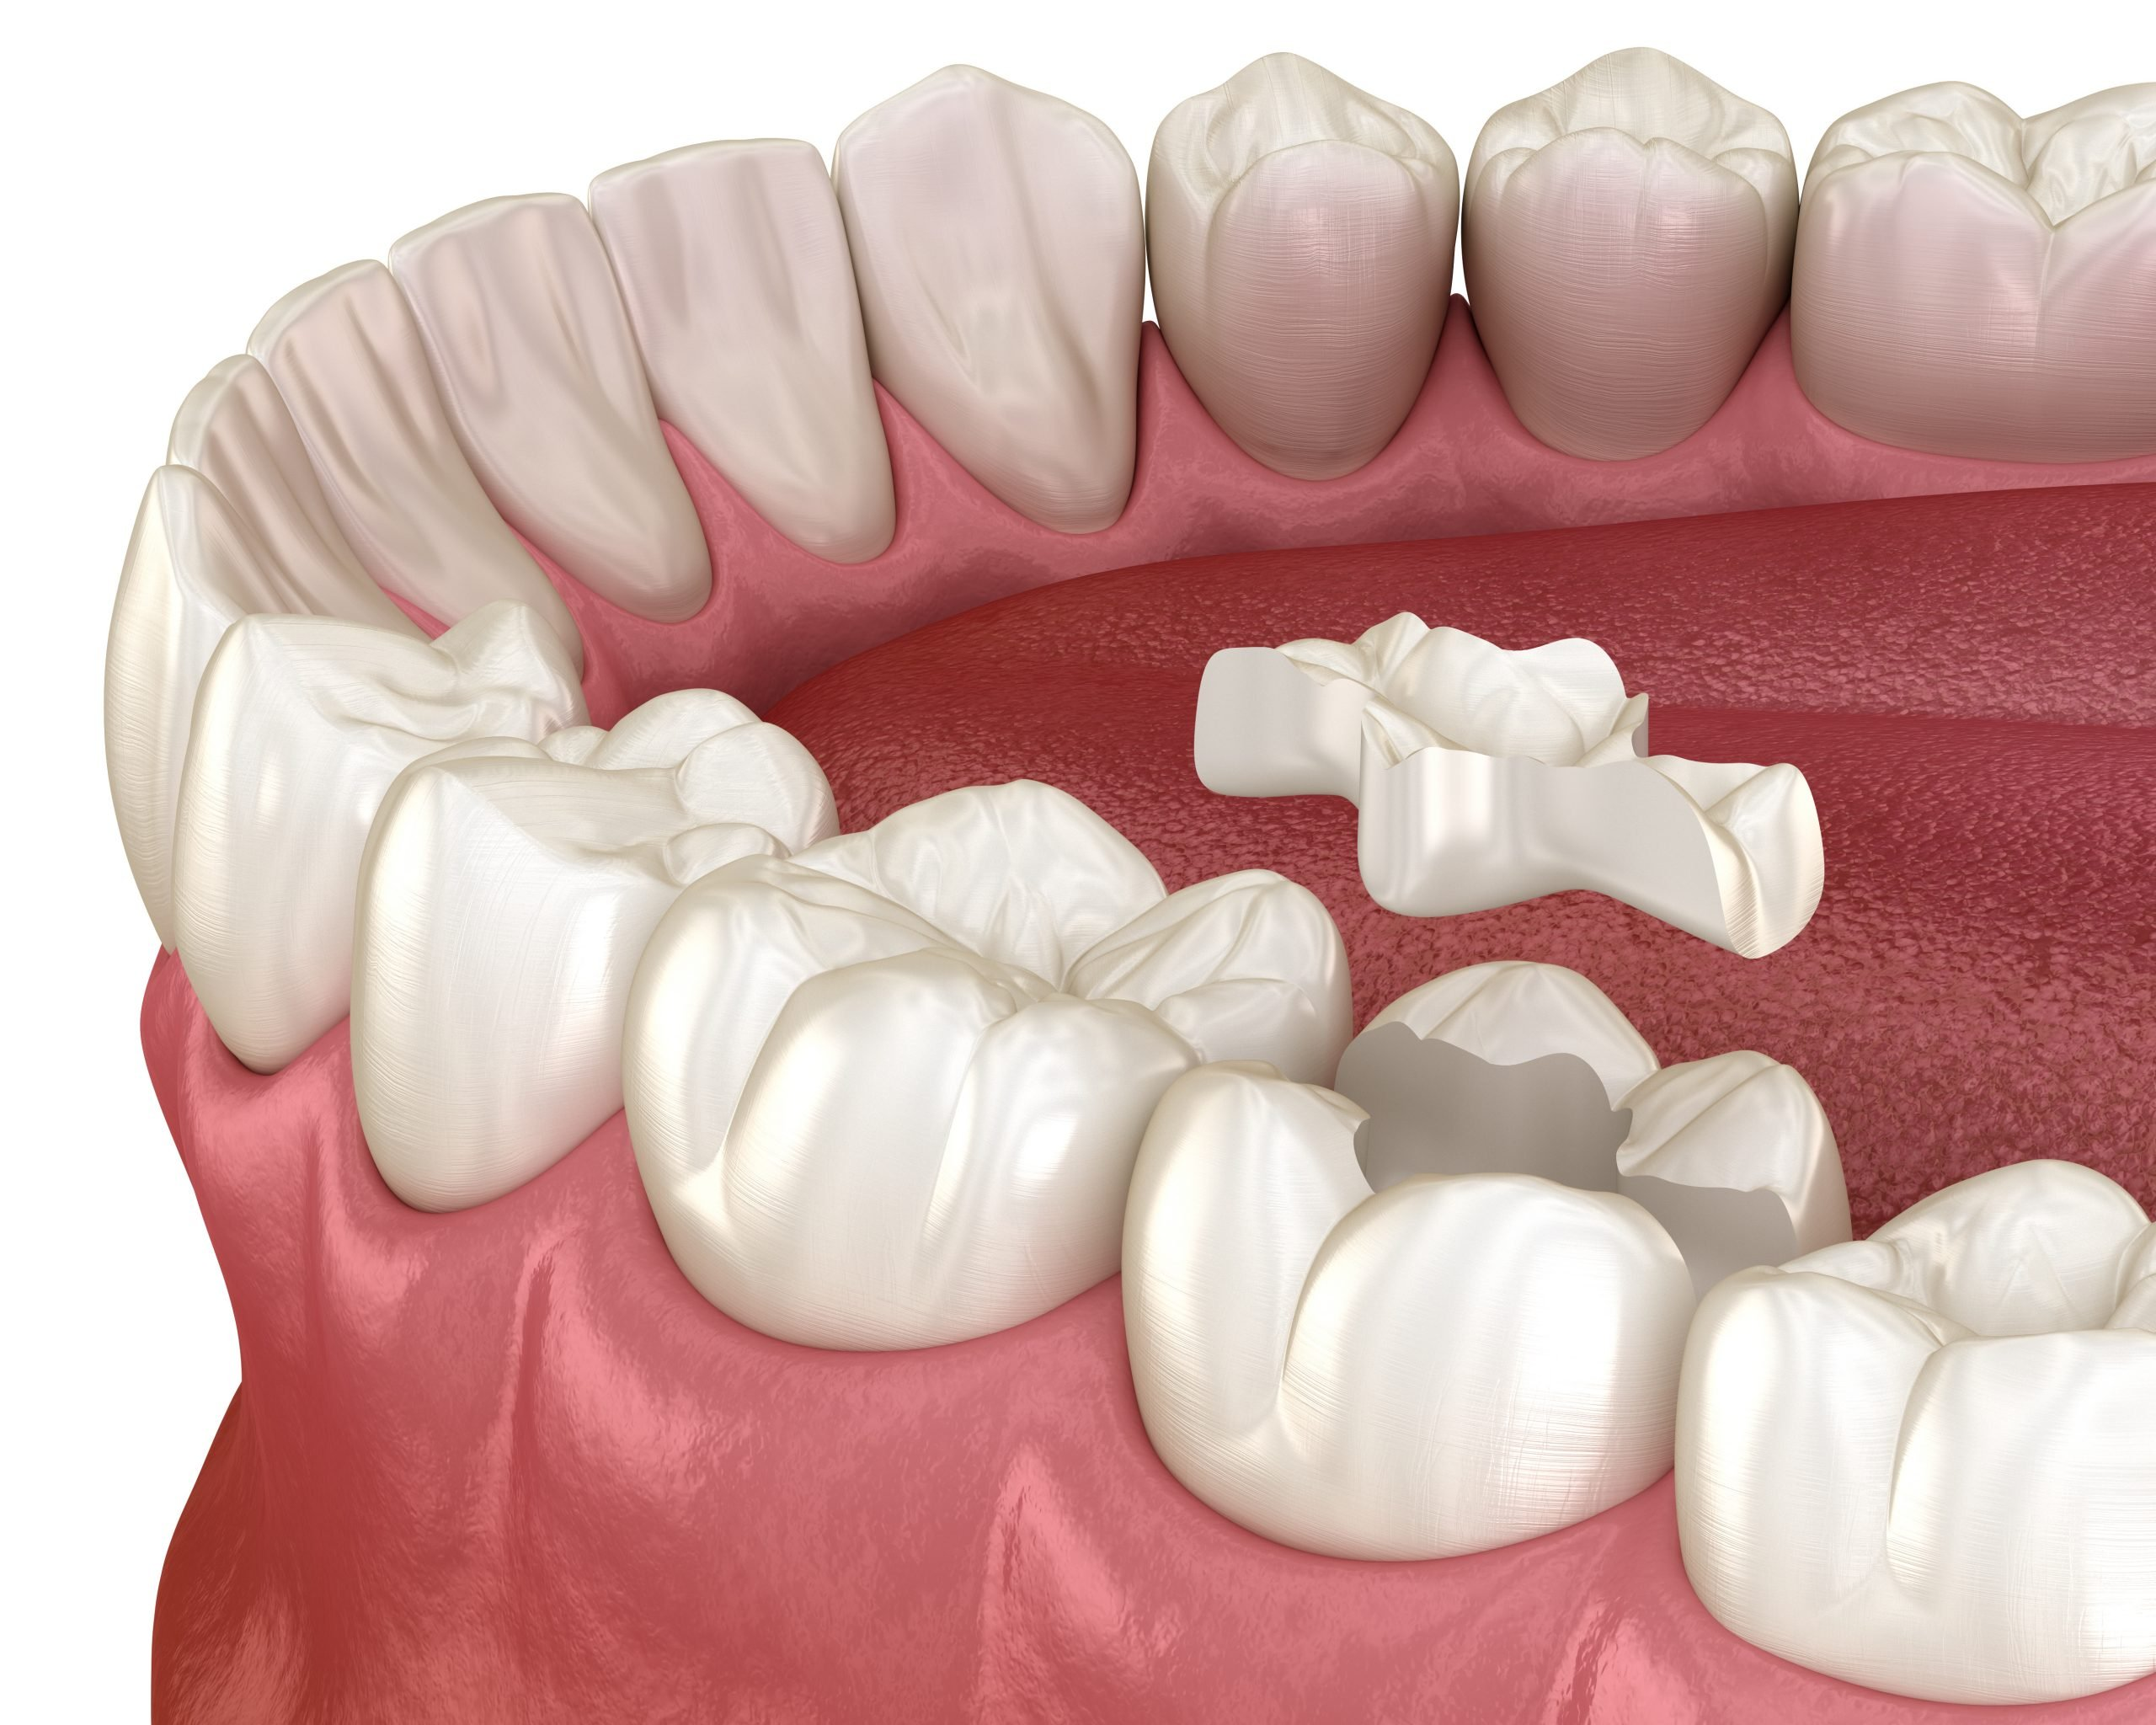 Inlay ceramic crown installation in to the tooth. Medically accurate 3D illustration of human teeth treatment